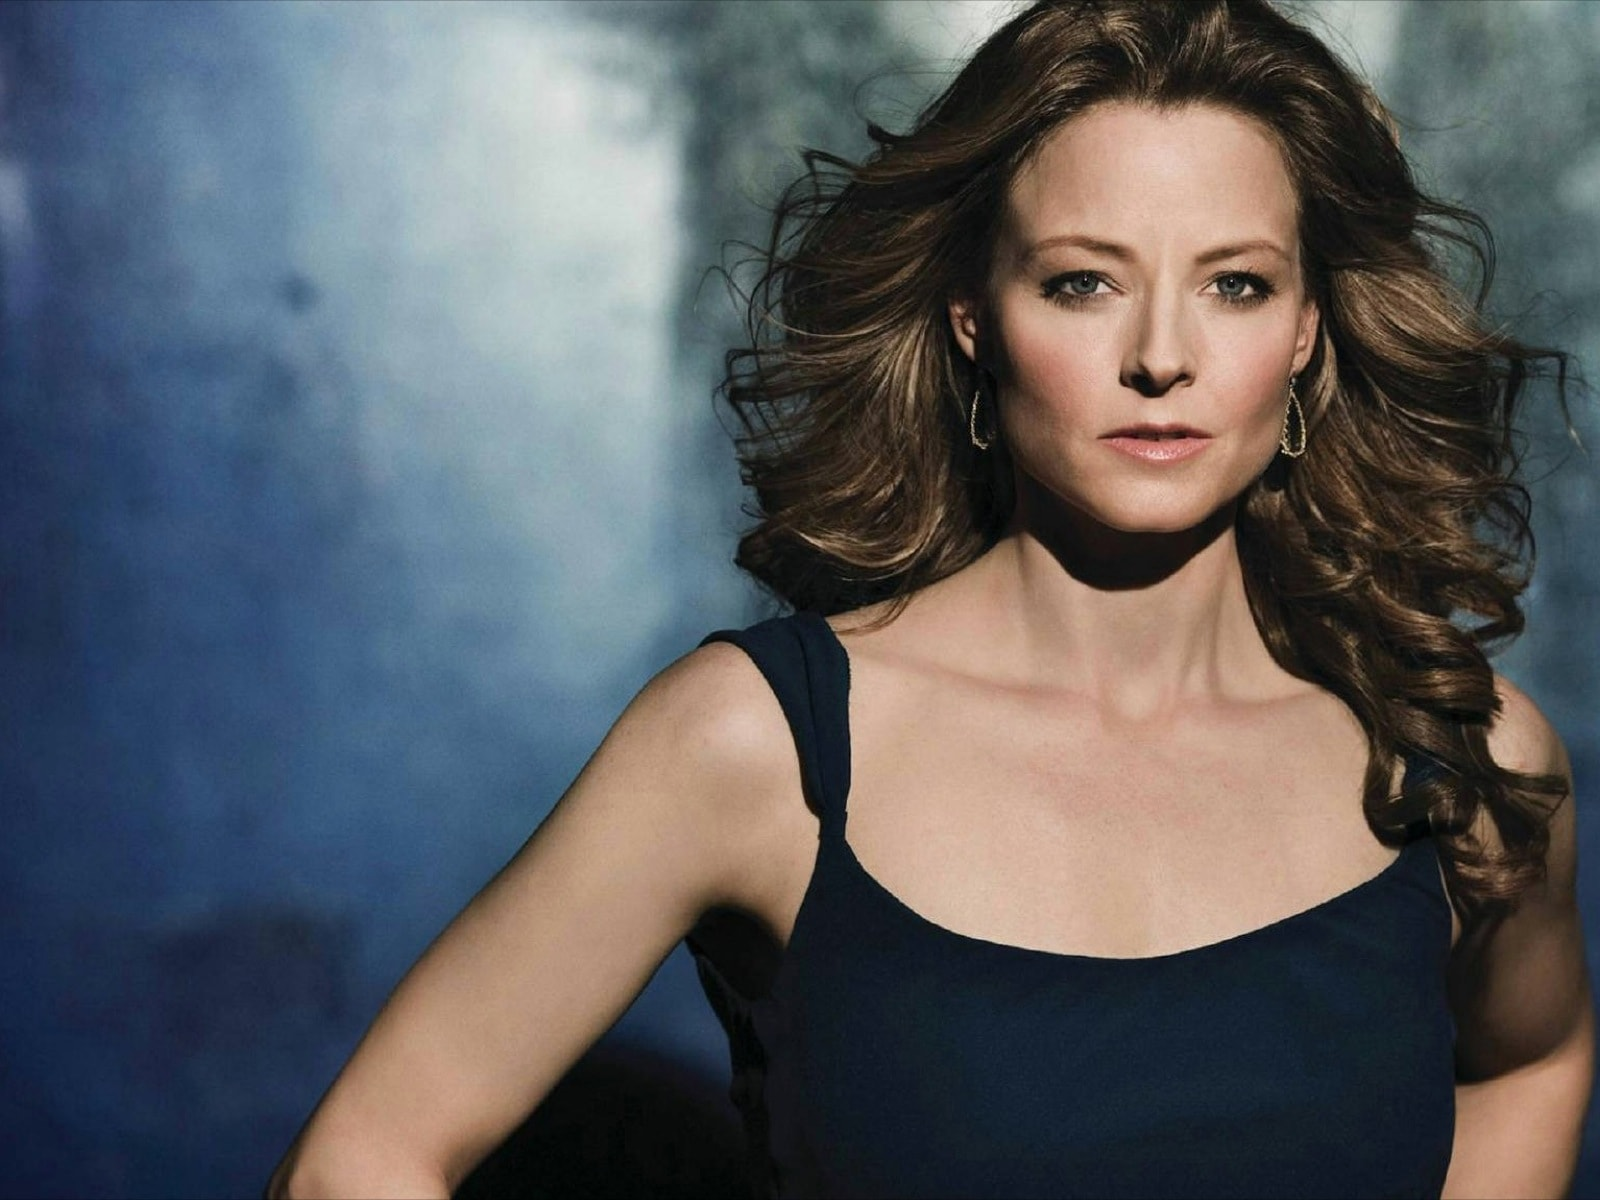 Jodie Foster Full hd wallpapers